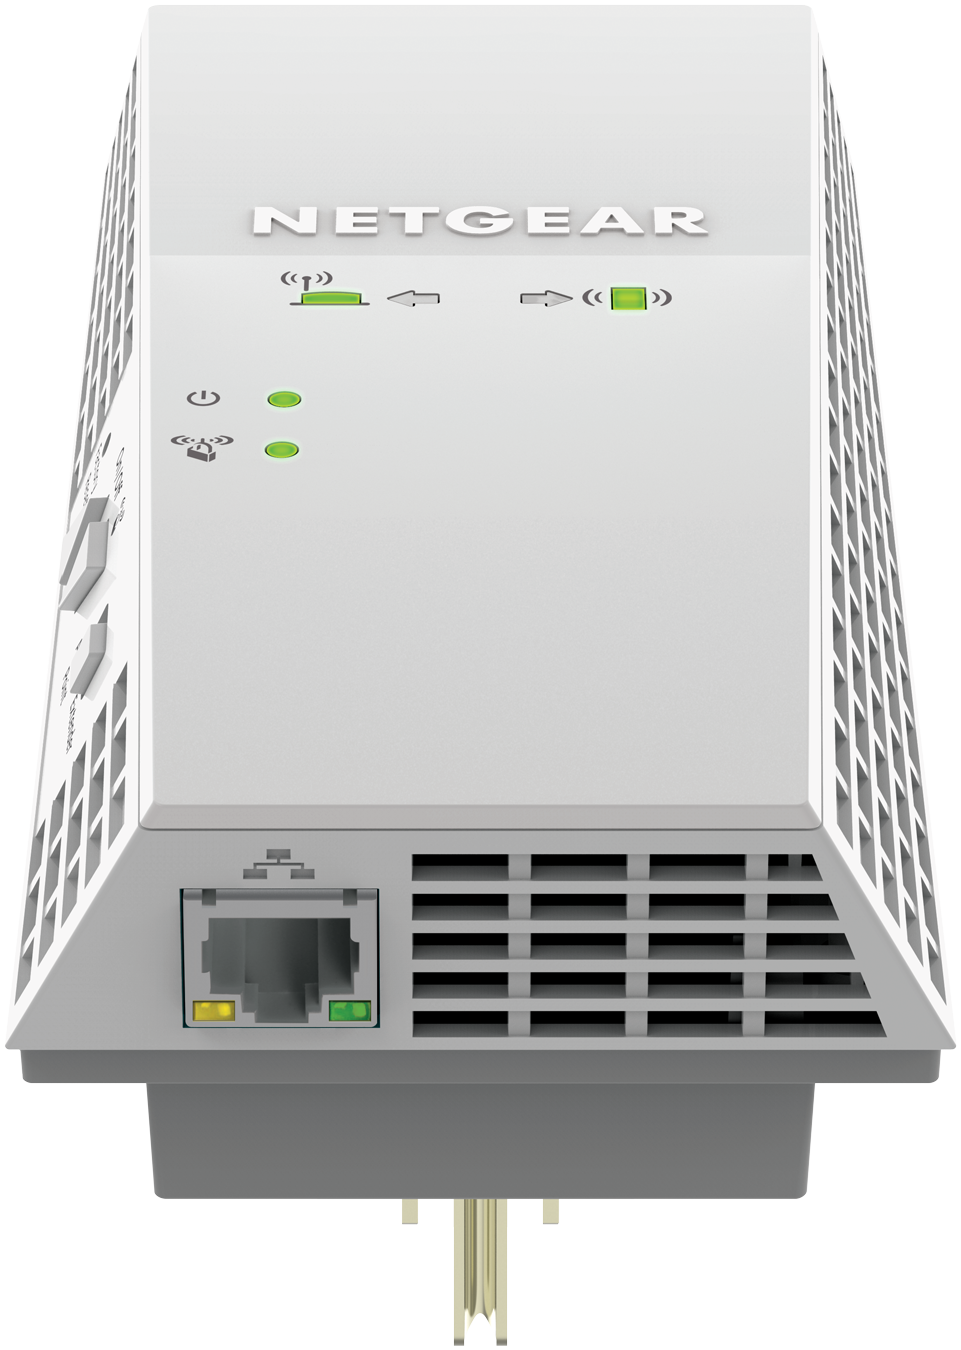 Bridge Netgear Wireless Ac 1900 Wire Center Circuit Schematic Diagram Of Nxp Tda3629 Light Position Controller Ex6400 Wifi Range Extenders Networking Home Rh Com Nighthawk R7000 Amazon